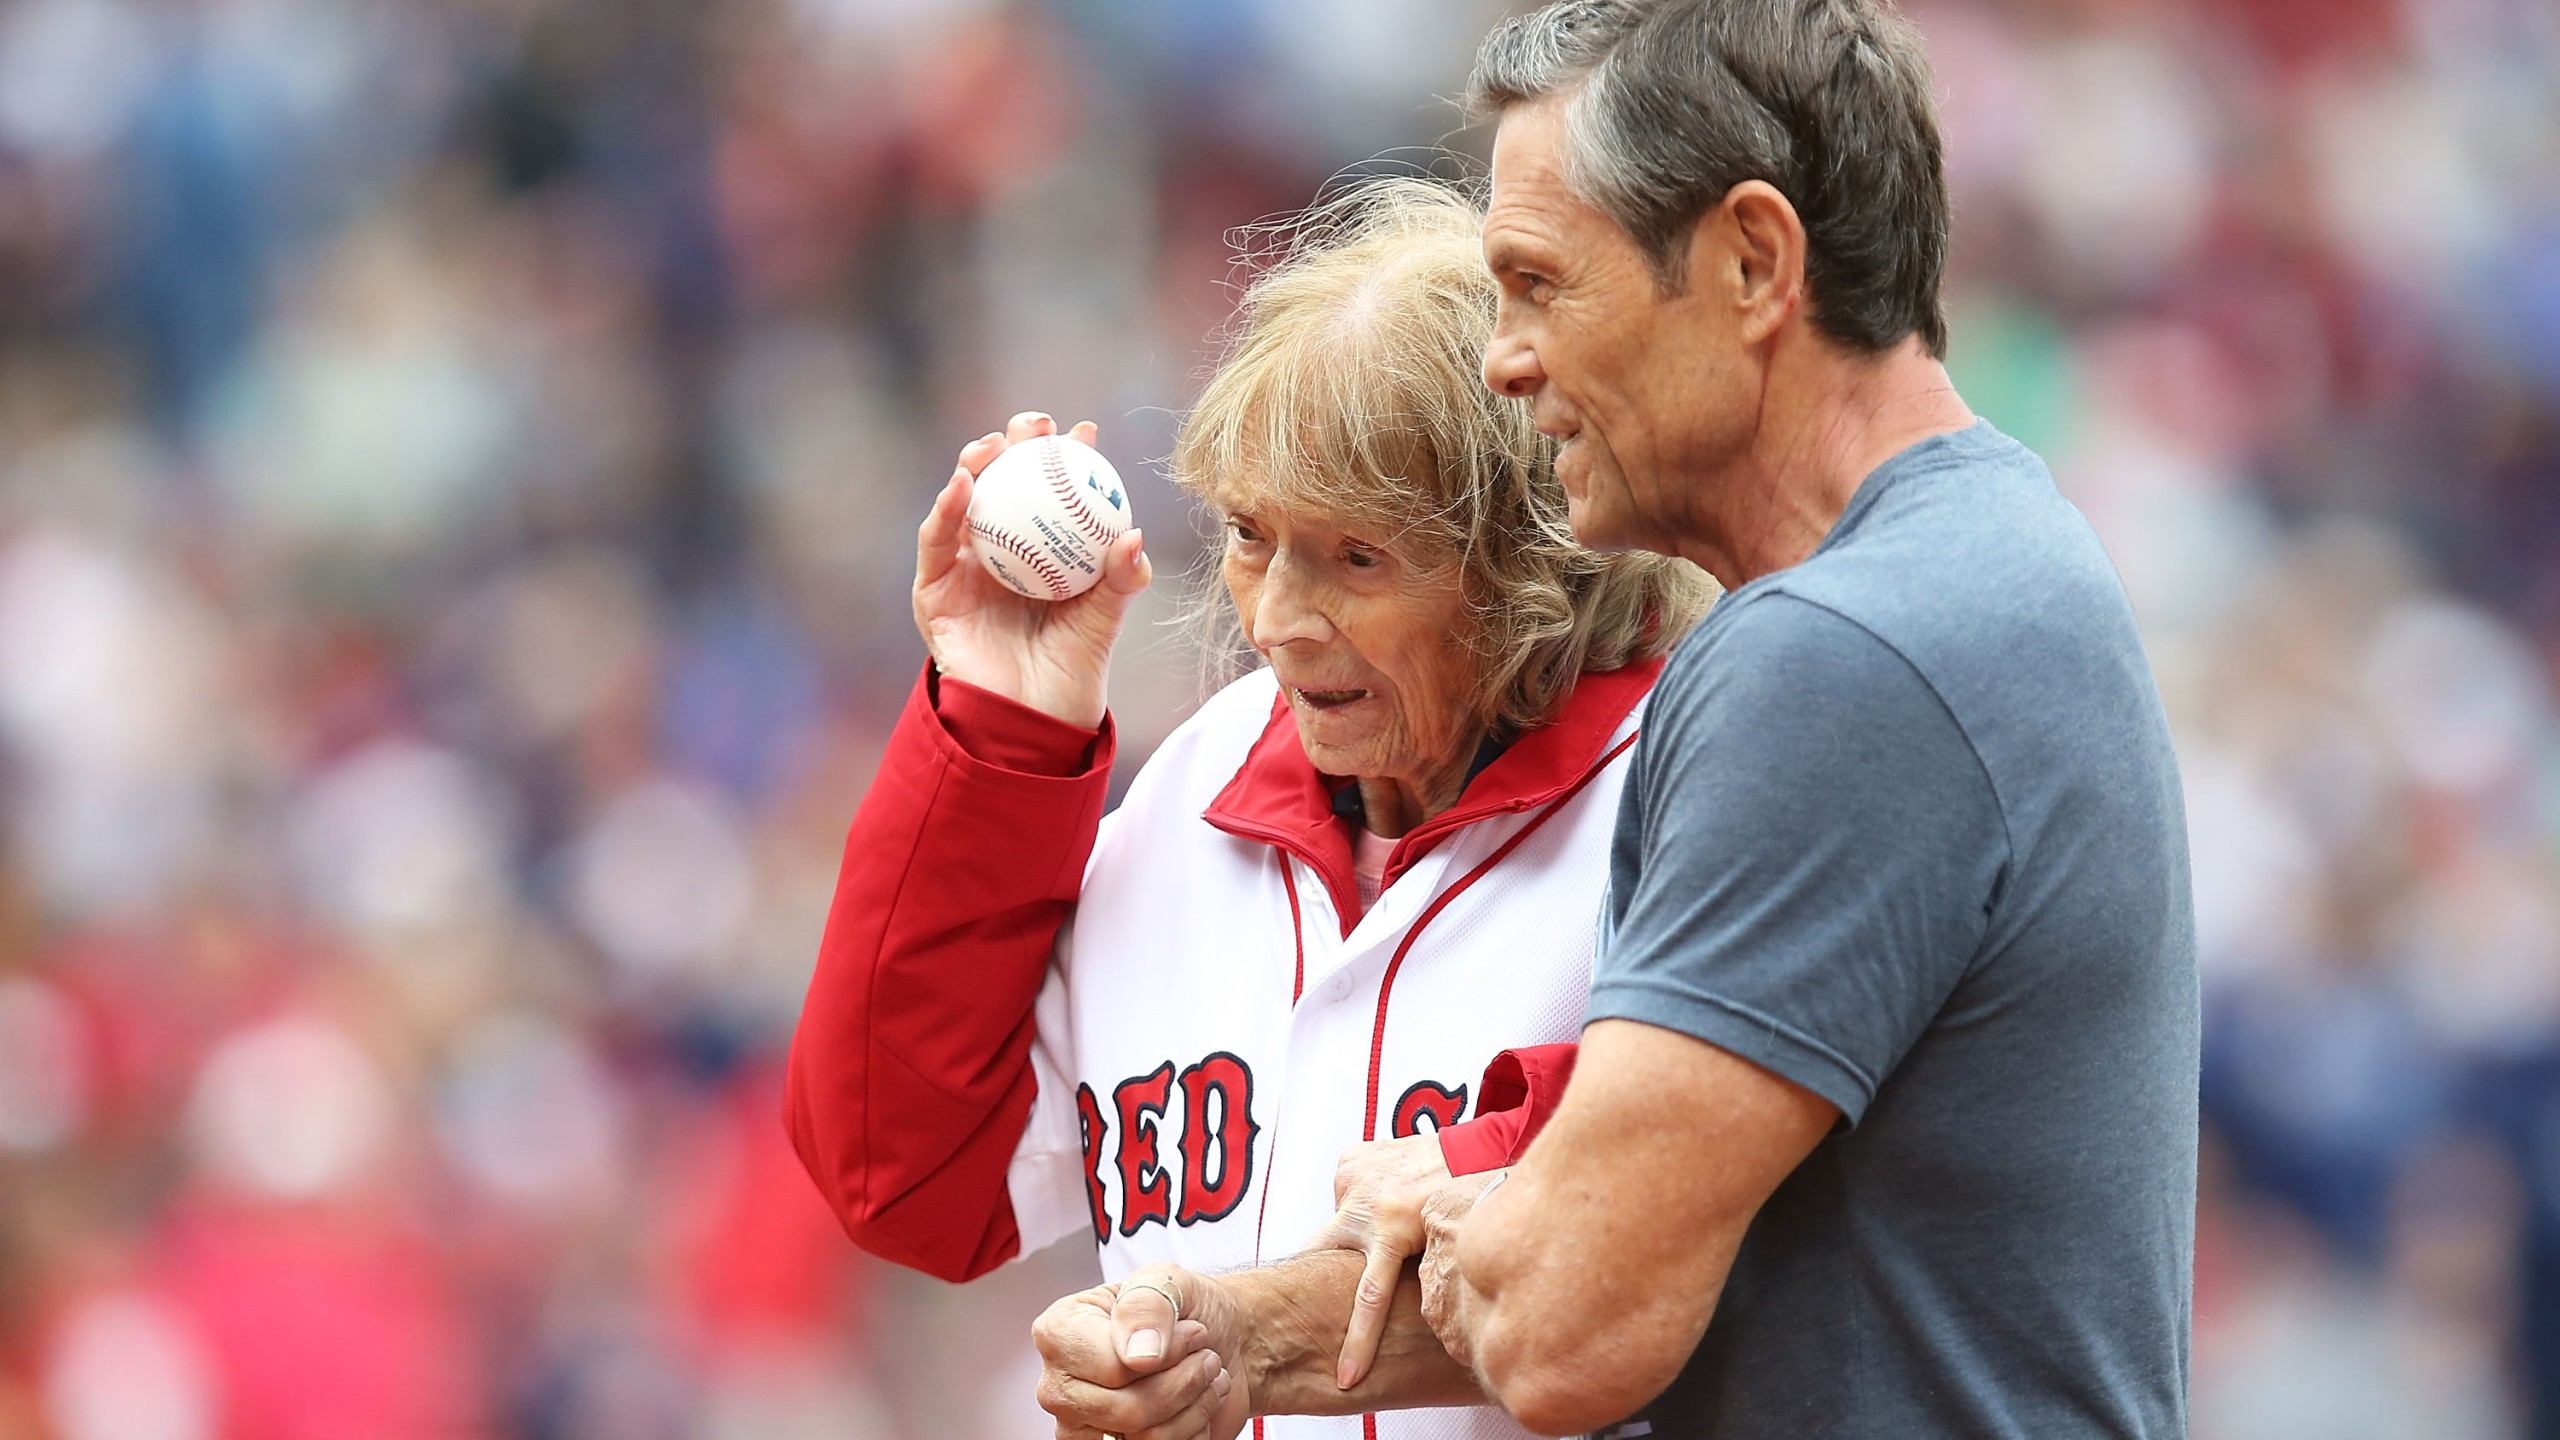 Julia Ruth Stevens throws out a ceremonial first pitch before a game between the Tampa Bay Rays and Boston Red Sox on July 9, 2016, at Fenway Park in Boston, Massachusetts. (Credit: Adam Glanzman/Getty Images)